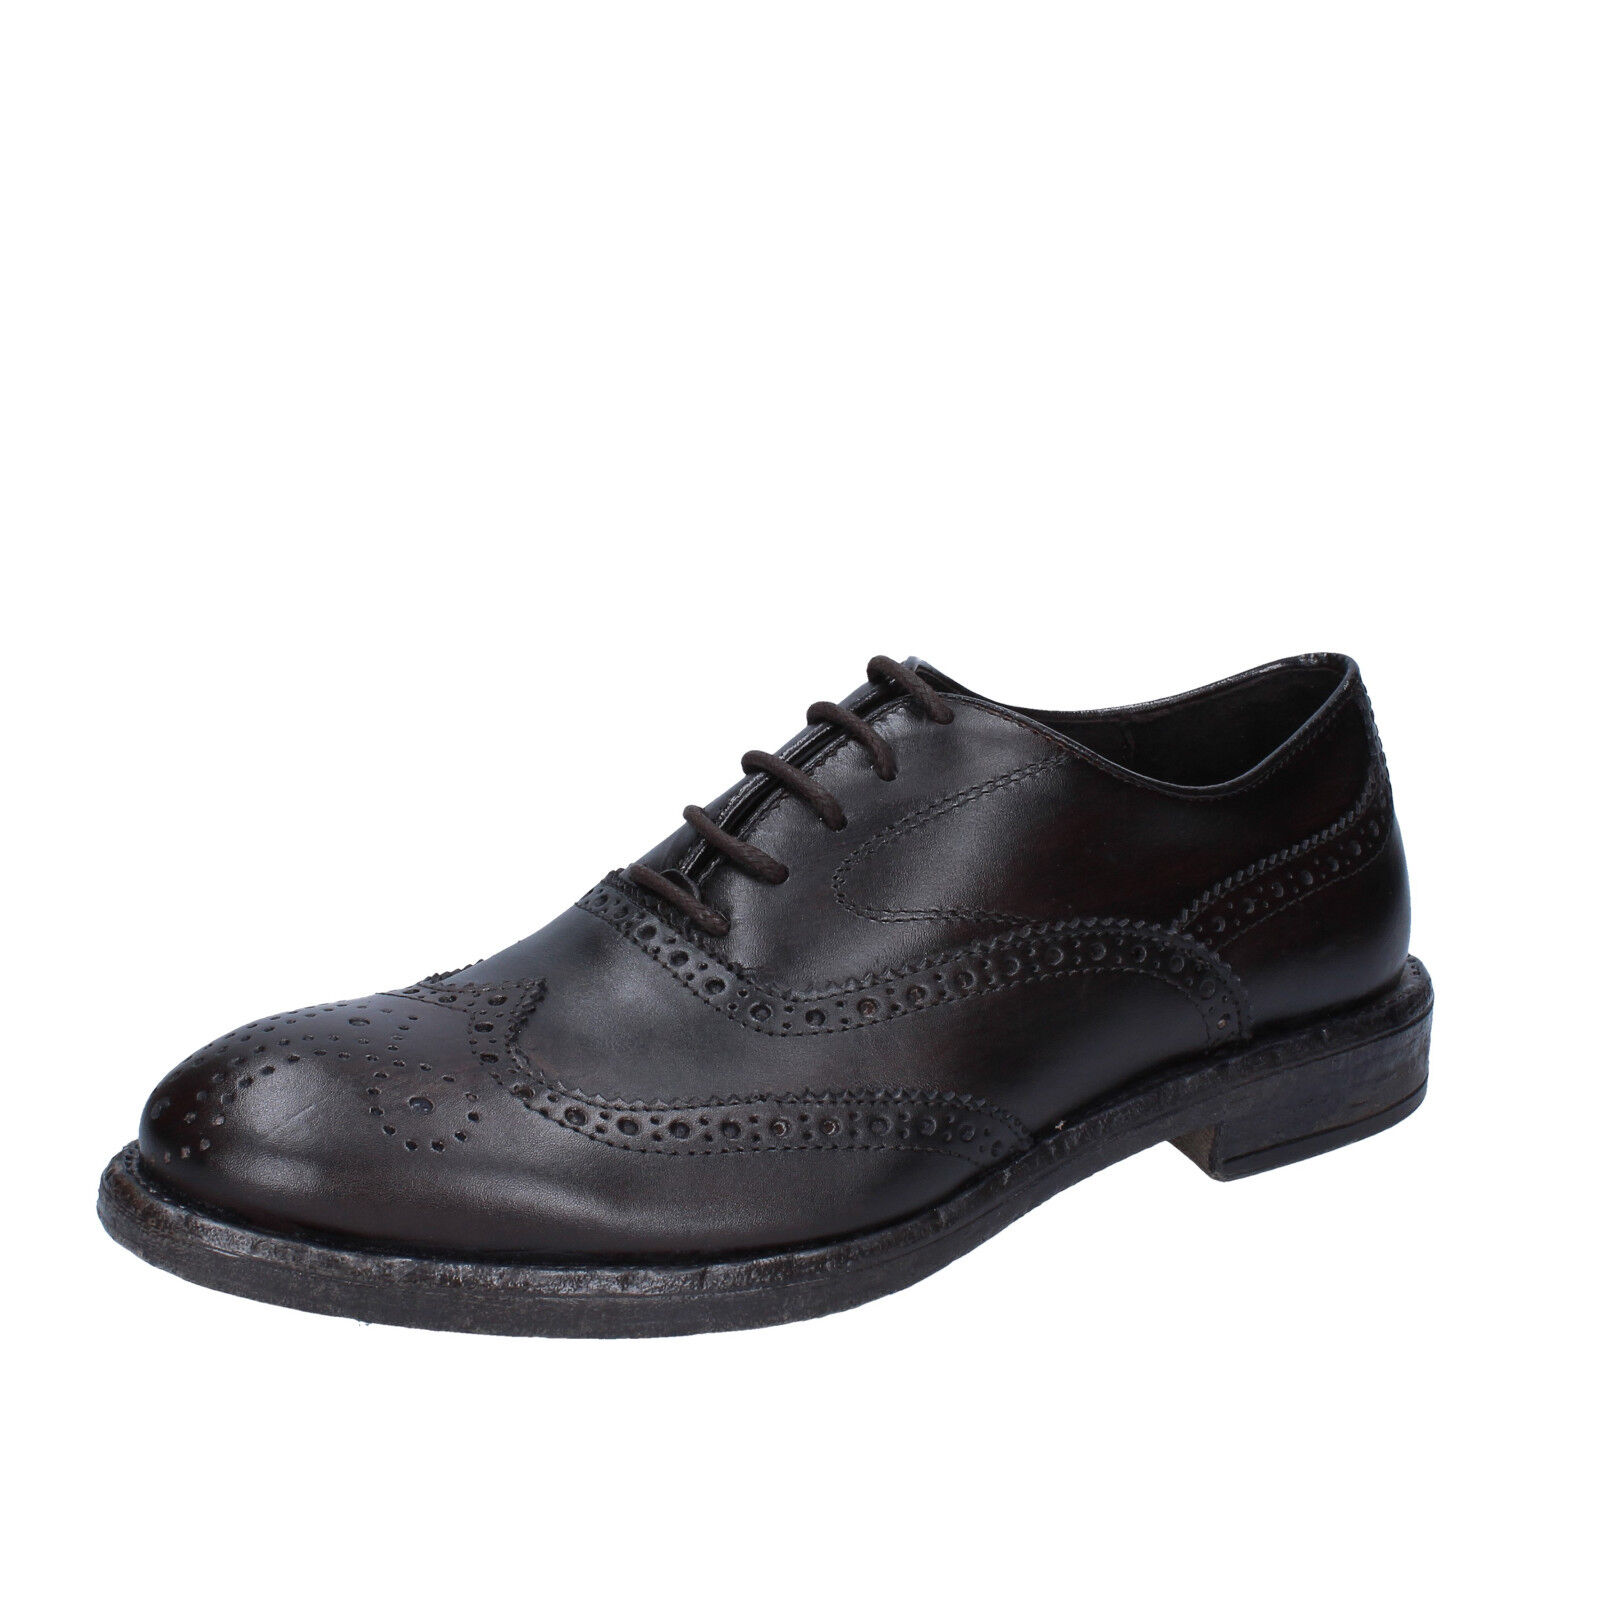 Mens shoes +2 MADE IN ITALY 7 () elegant dark brown leather BX422-41